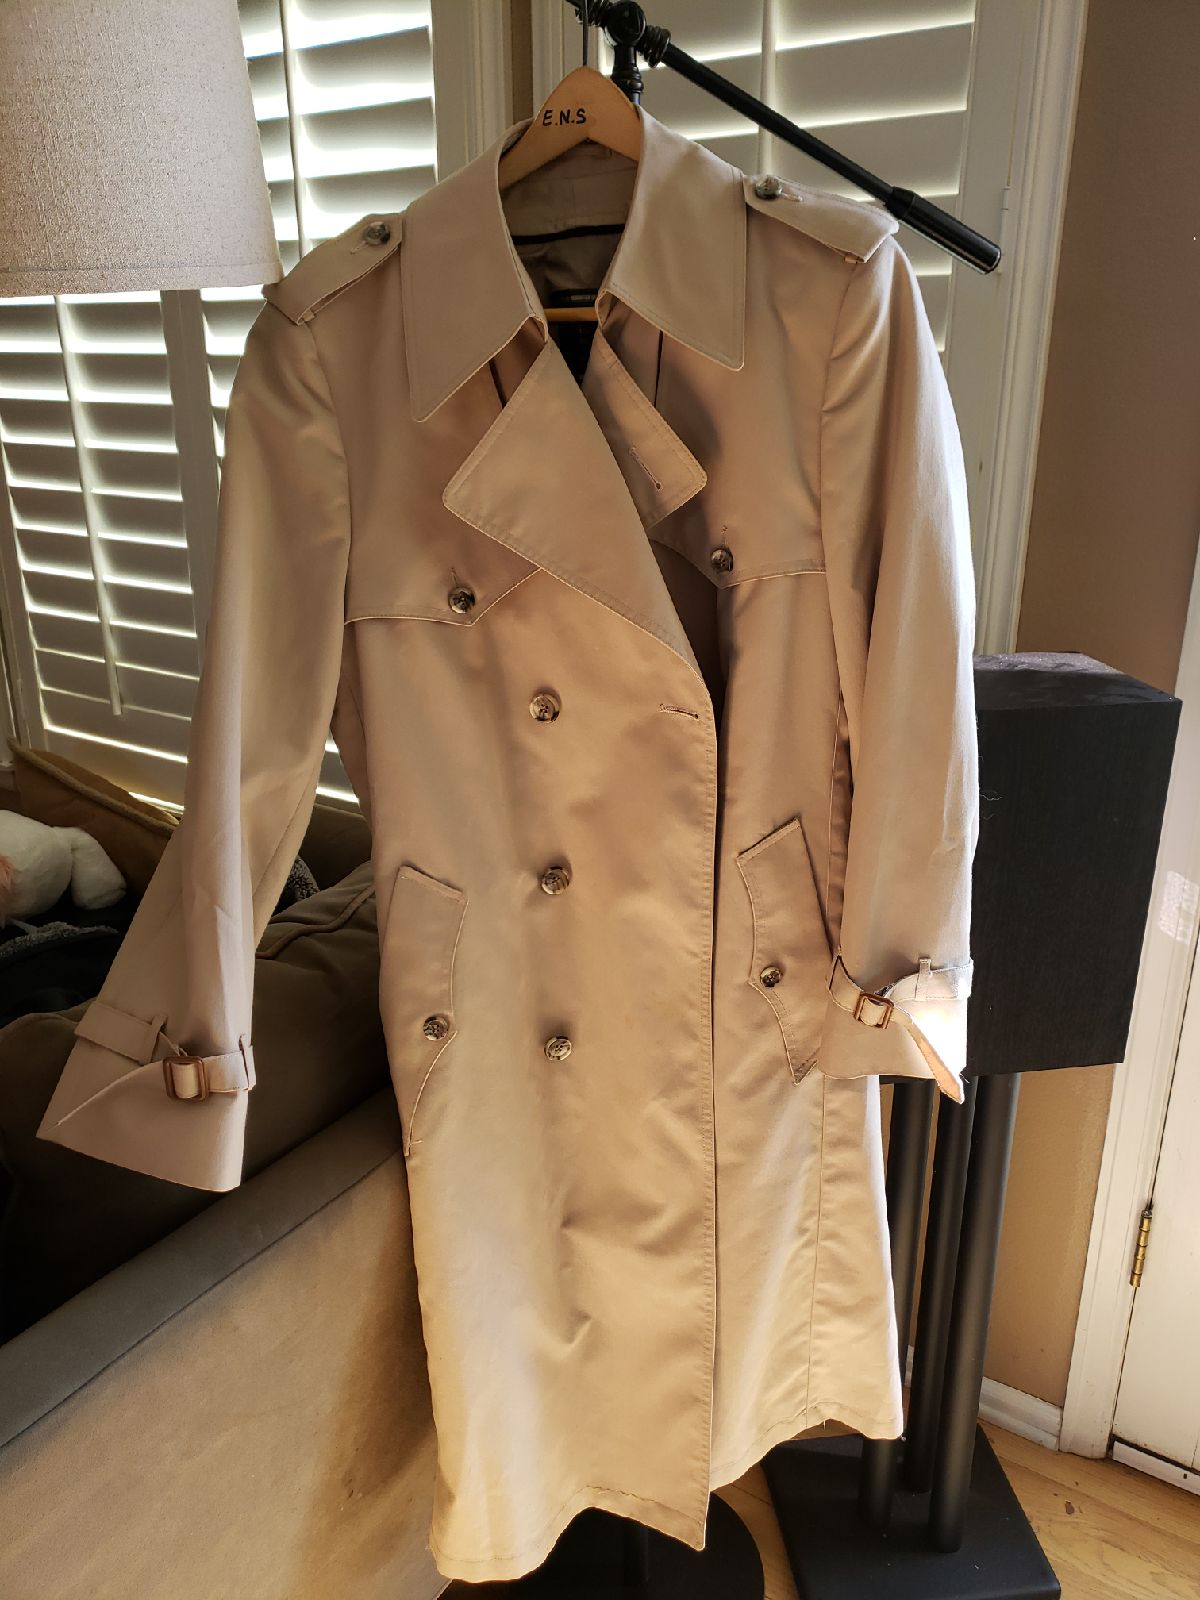 Rare lined Christian Dior Trench Coat